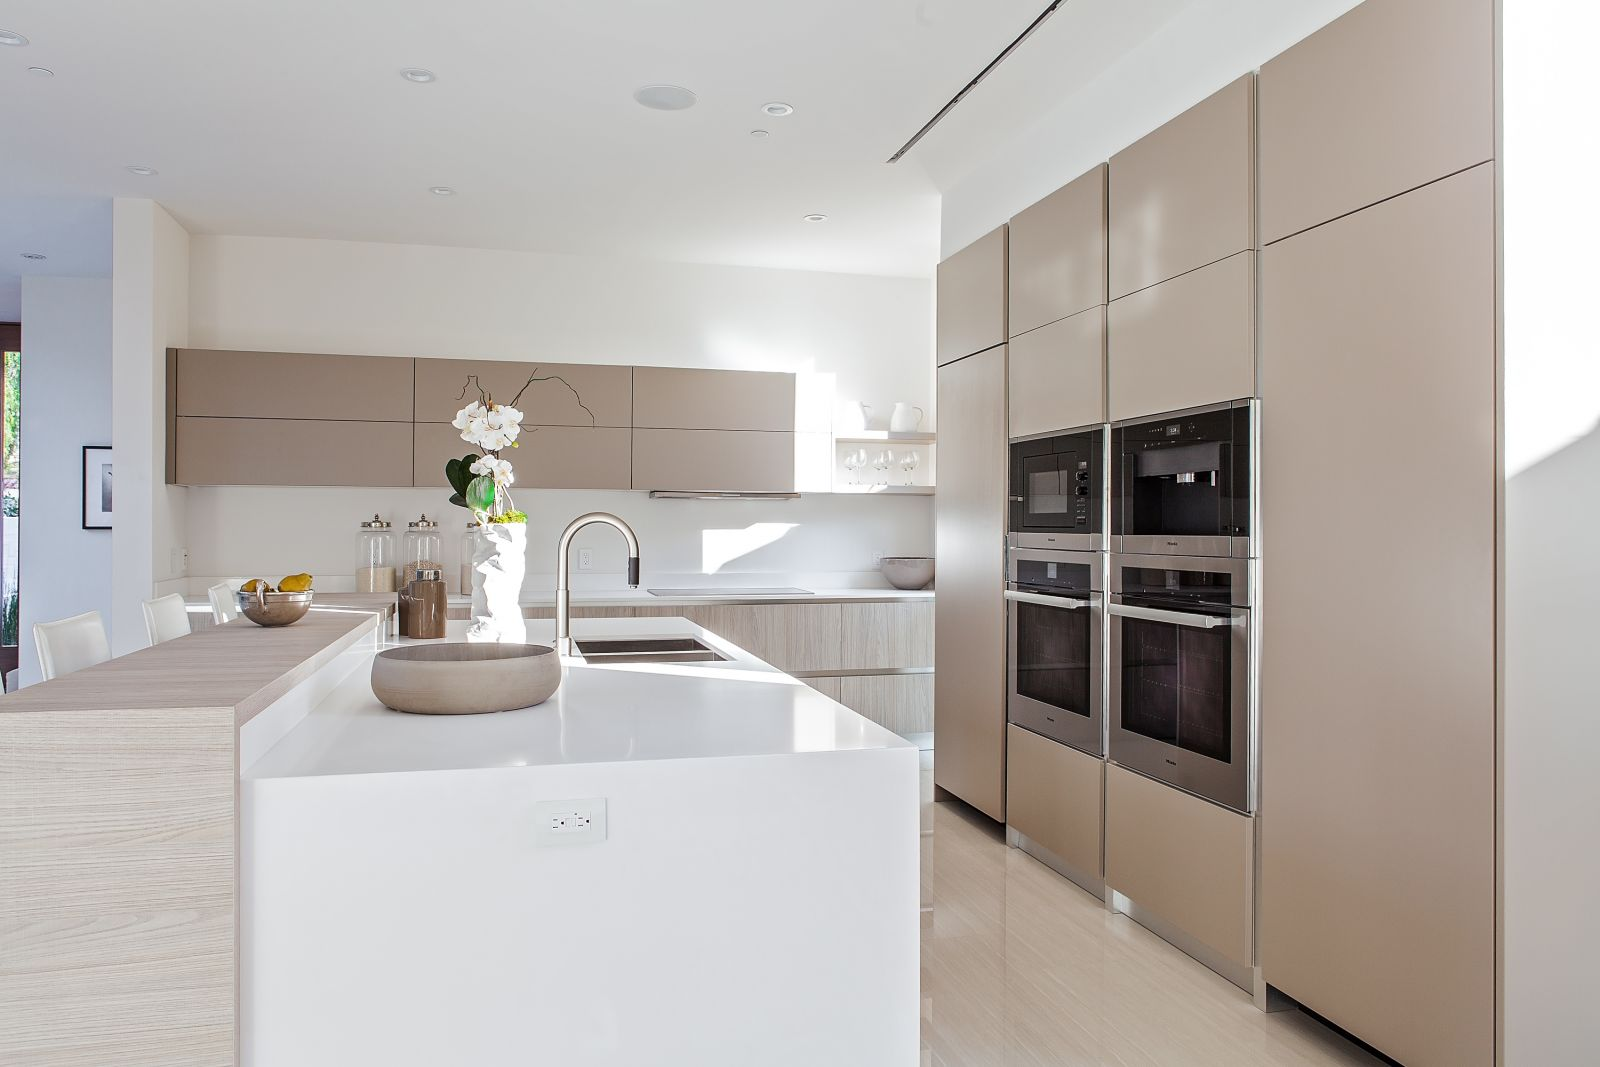 RTA Kitchen Cabinets. MT 122/Limna Collection Los Angeles, CA